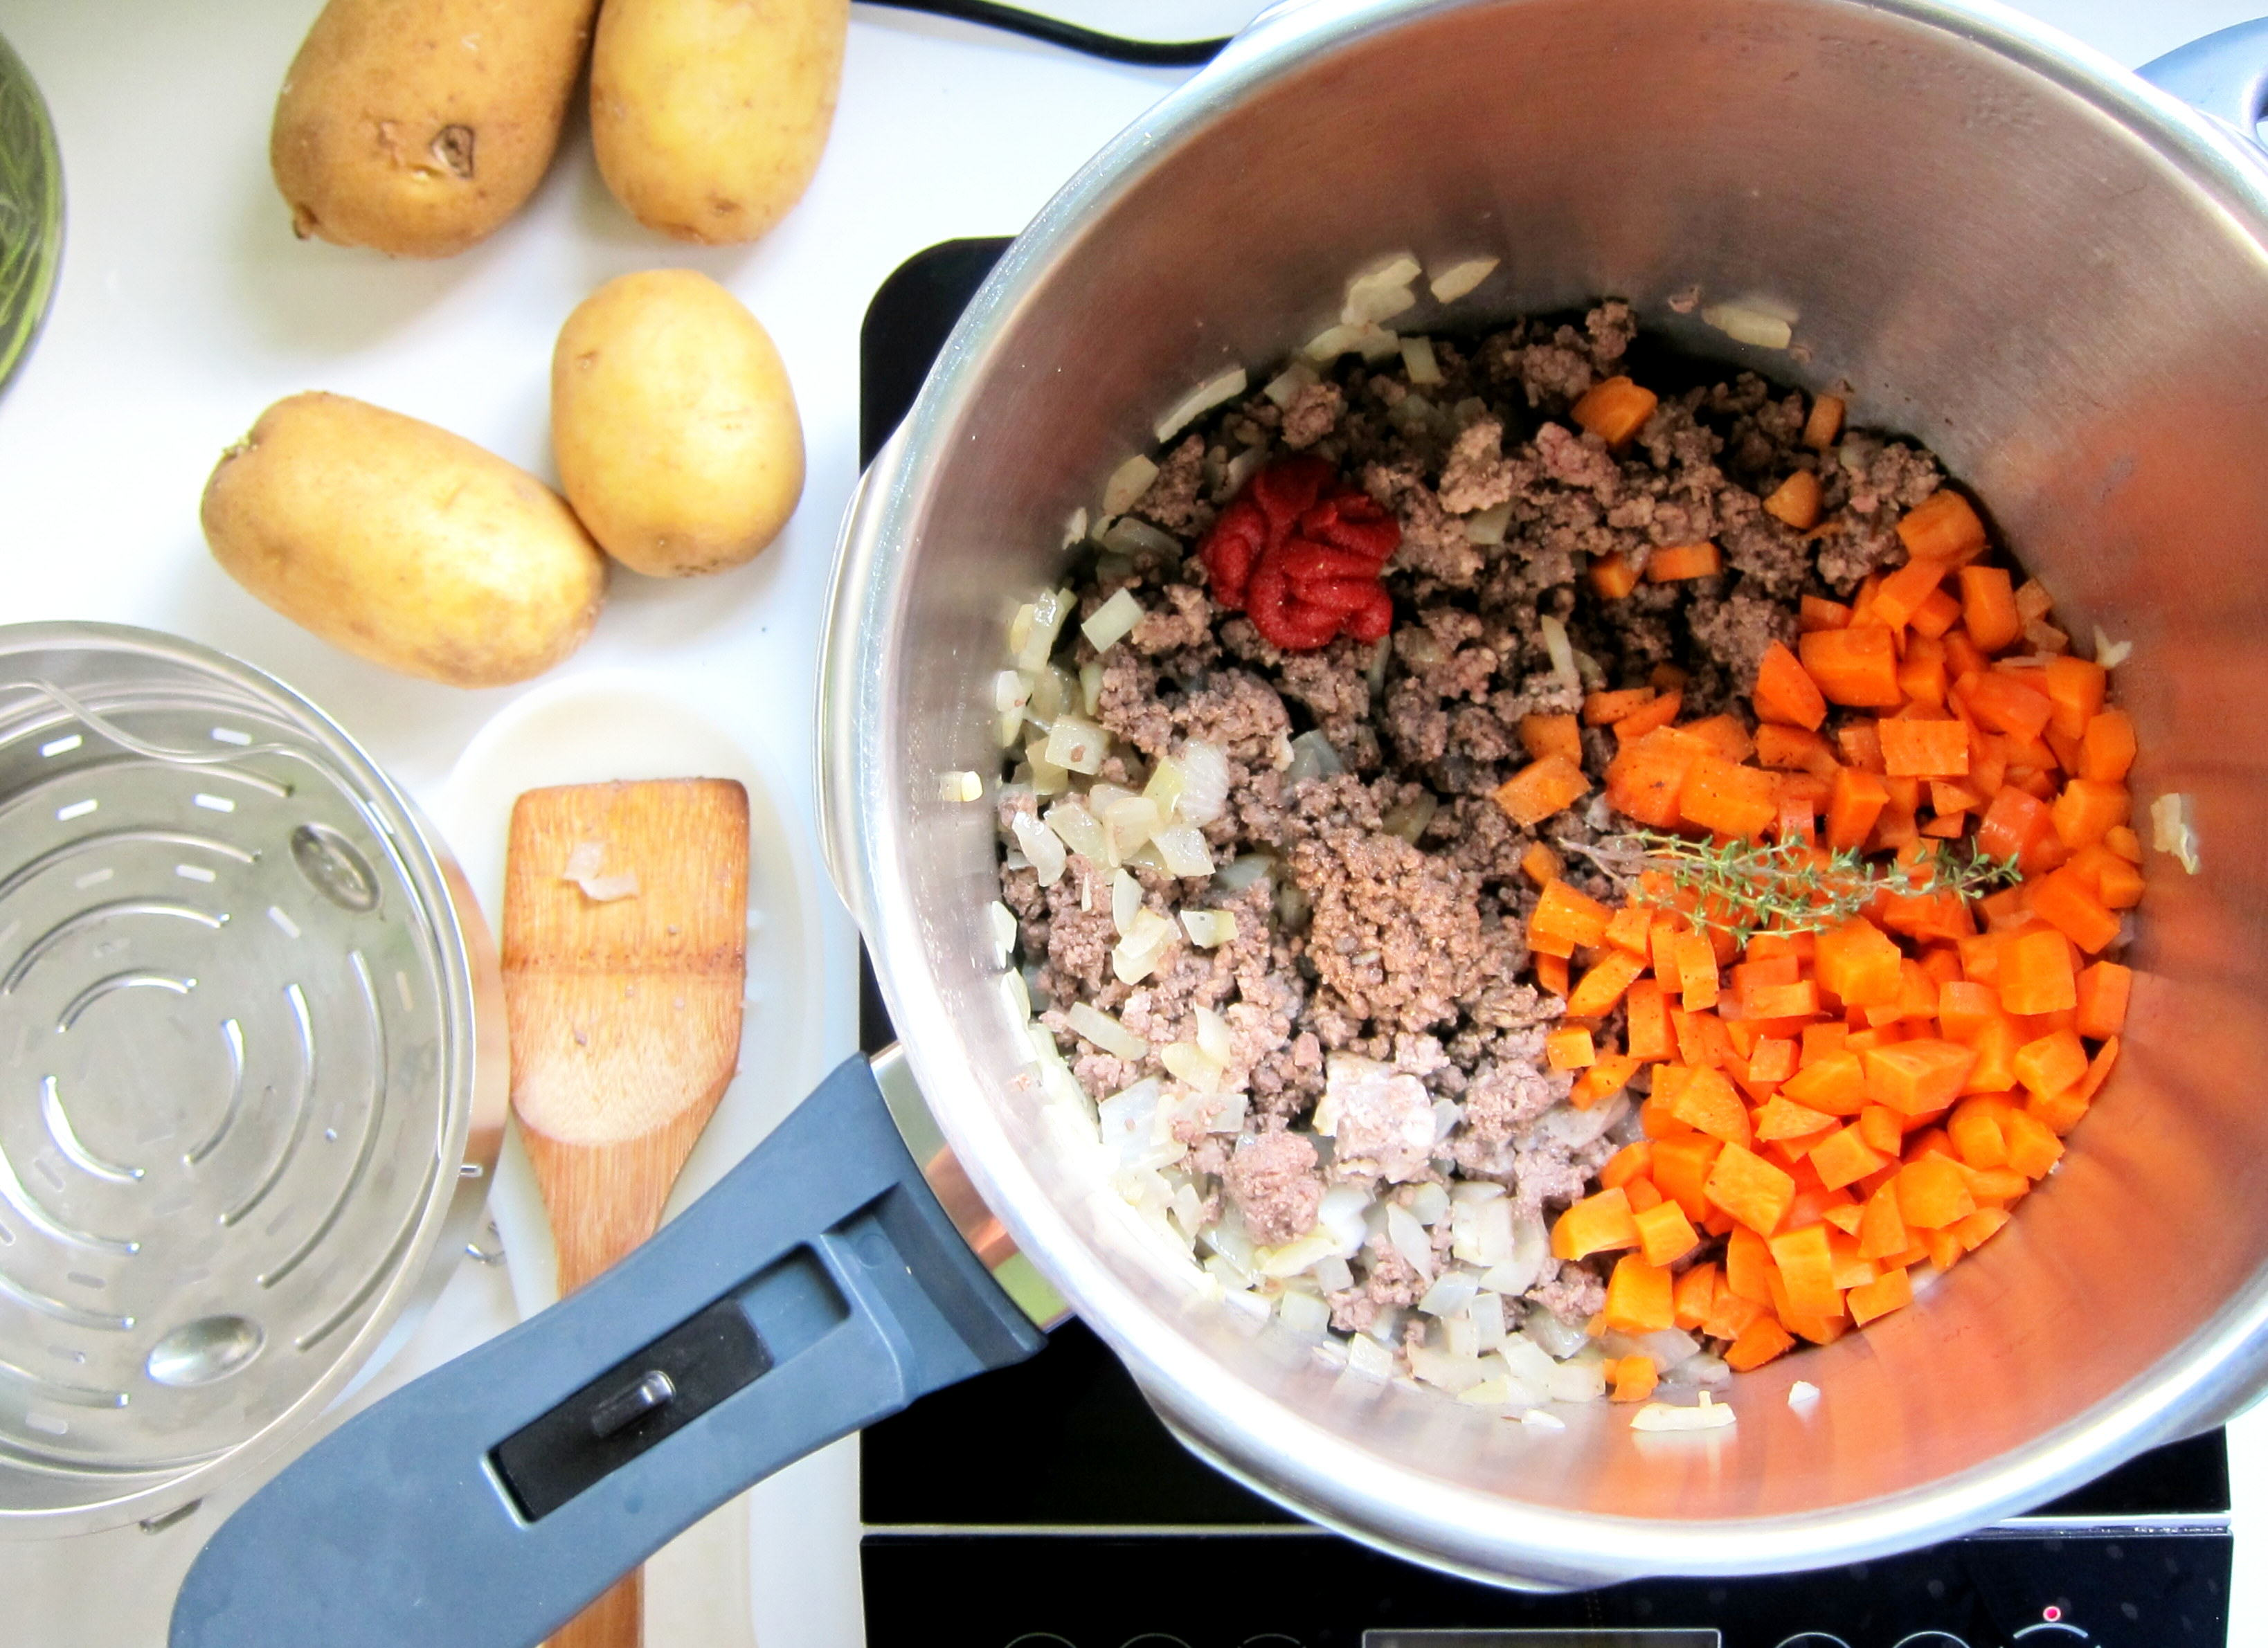 Add the rest of the ingredients for the meat filling (except for the frozen peas).